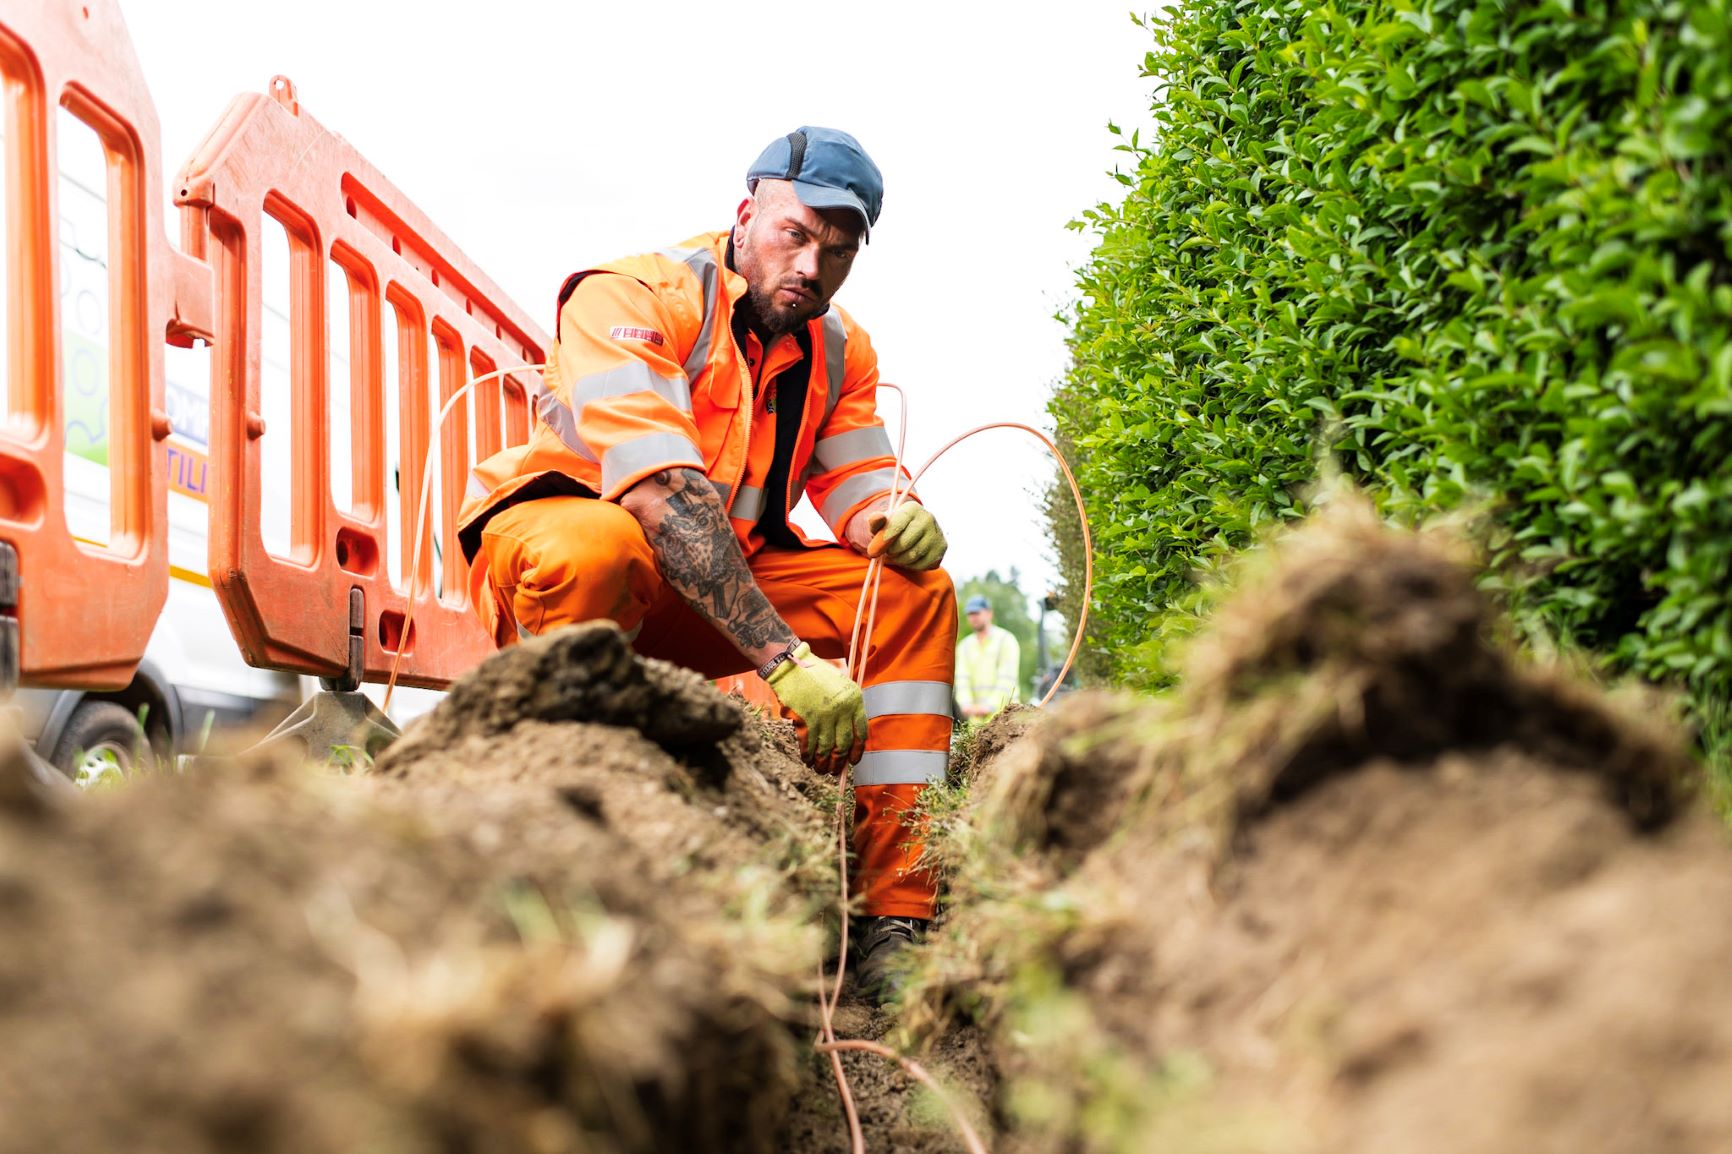 Ultrafast broadband delivered to more than 10,000 properties in the District